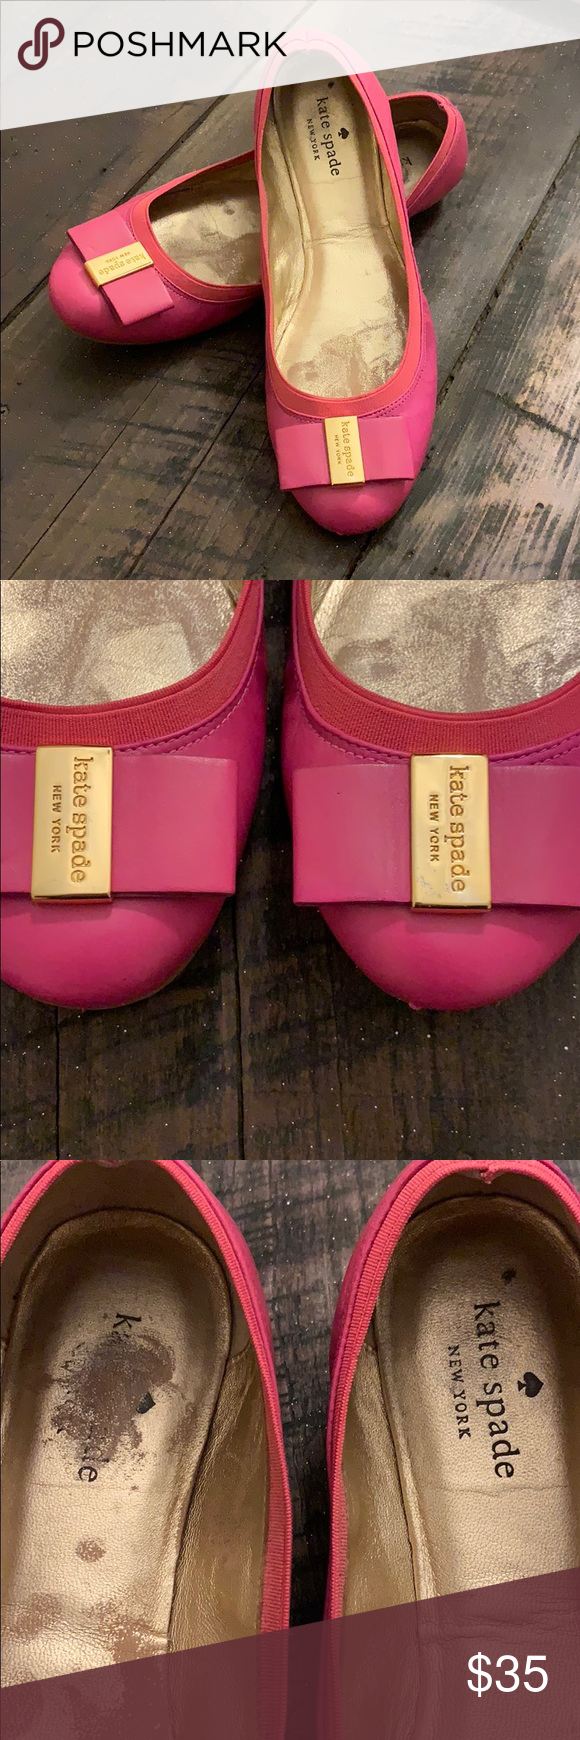 02cf87576141 Authentic Kate Spade Pink Ballet Leather Flats PLEASE SEE PICS FOR DAMAGE Authentic  Kate Spade Pink